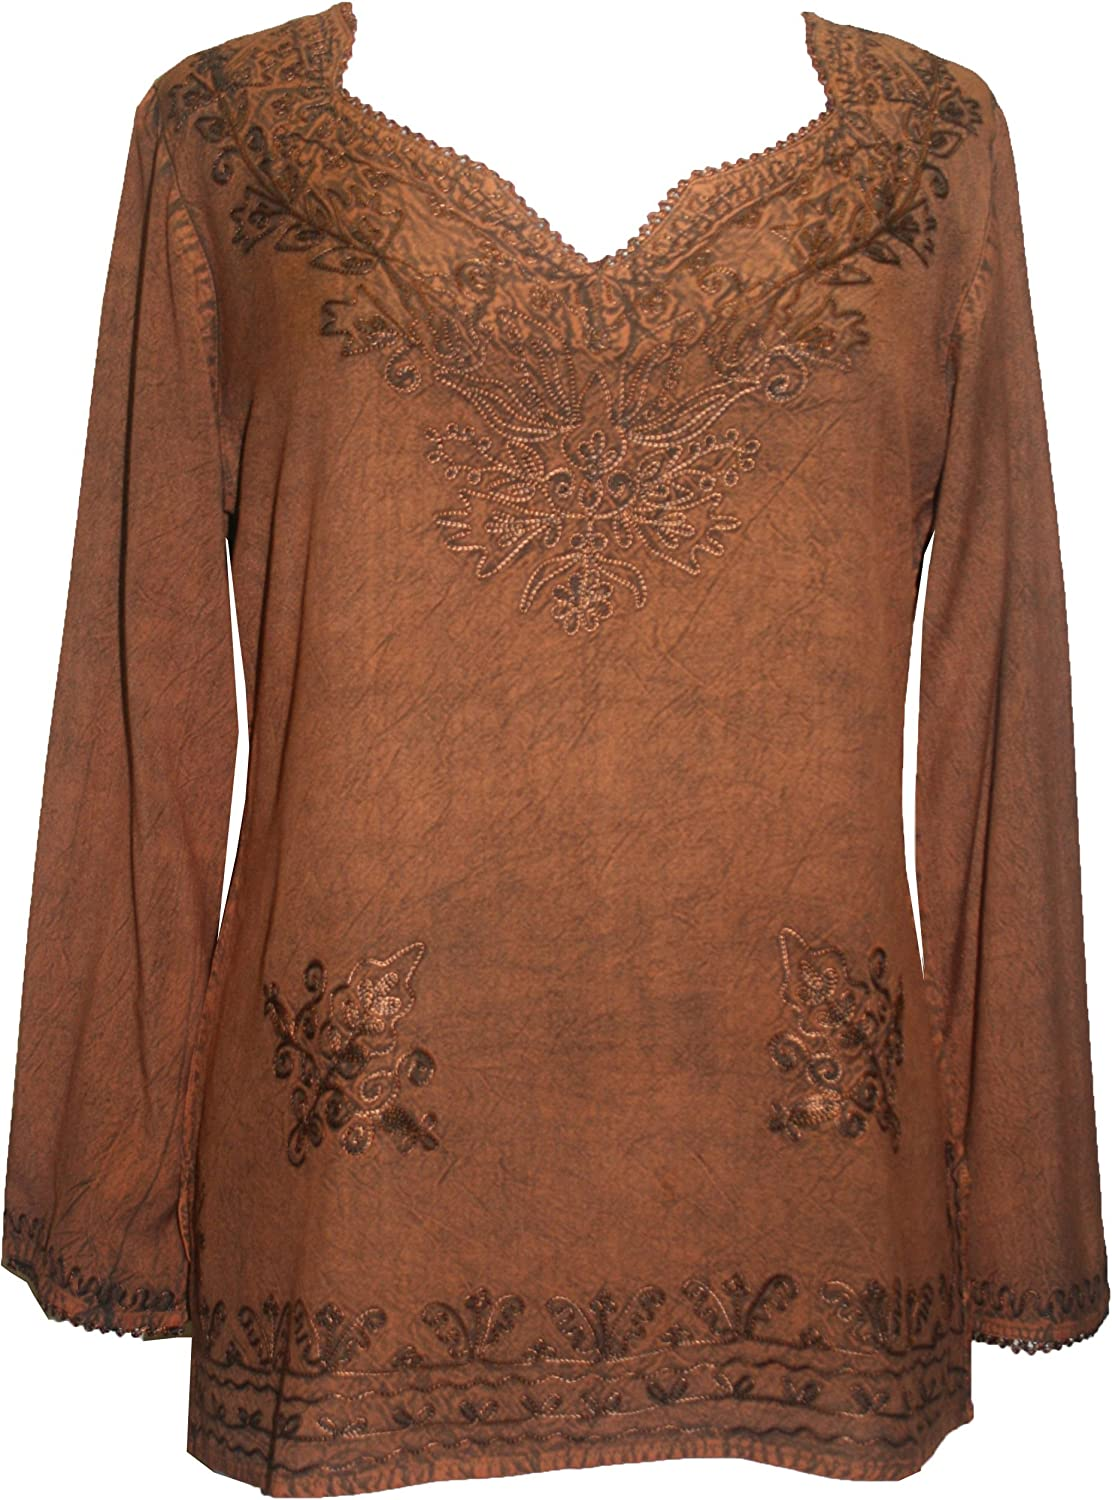 Agan Traders 720 B Womens Bohemian Medieval Gypsy Embroidered Top Blouse Tunic